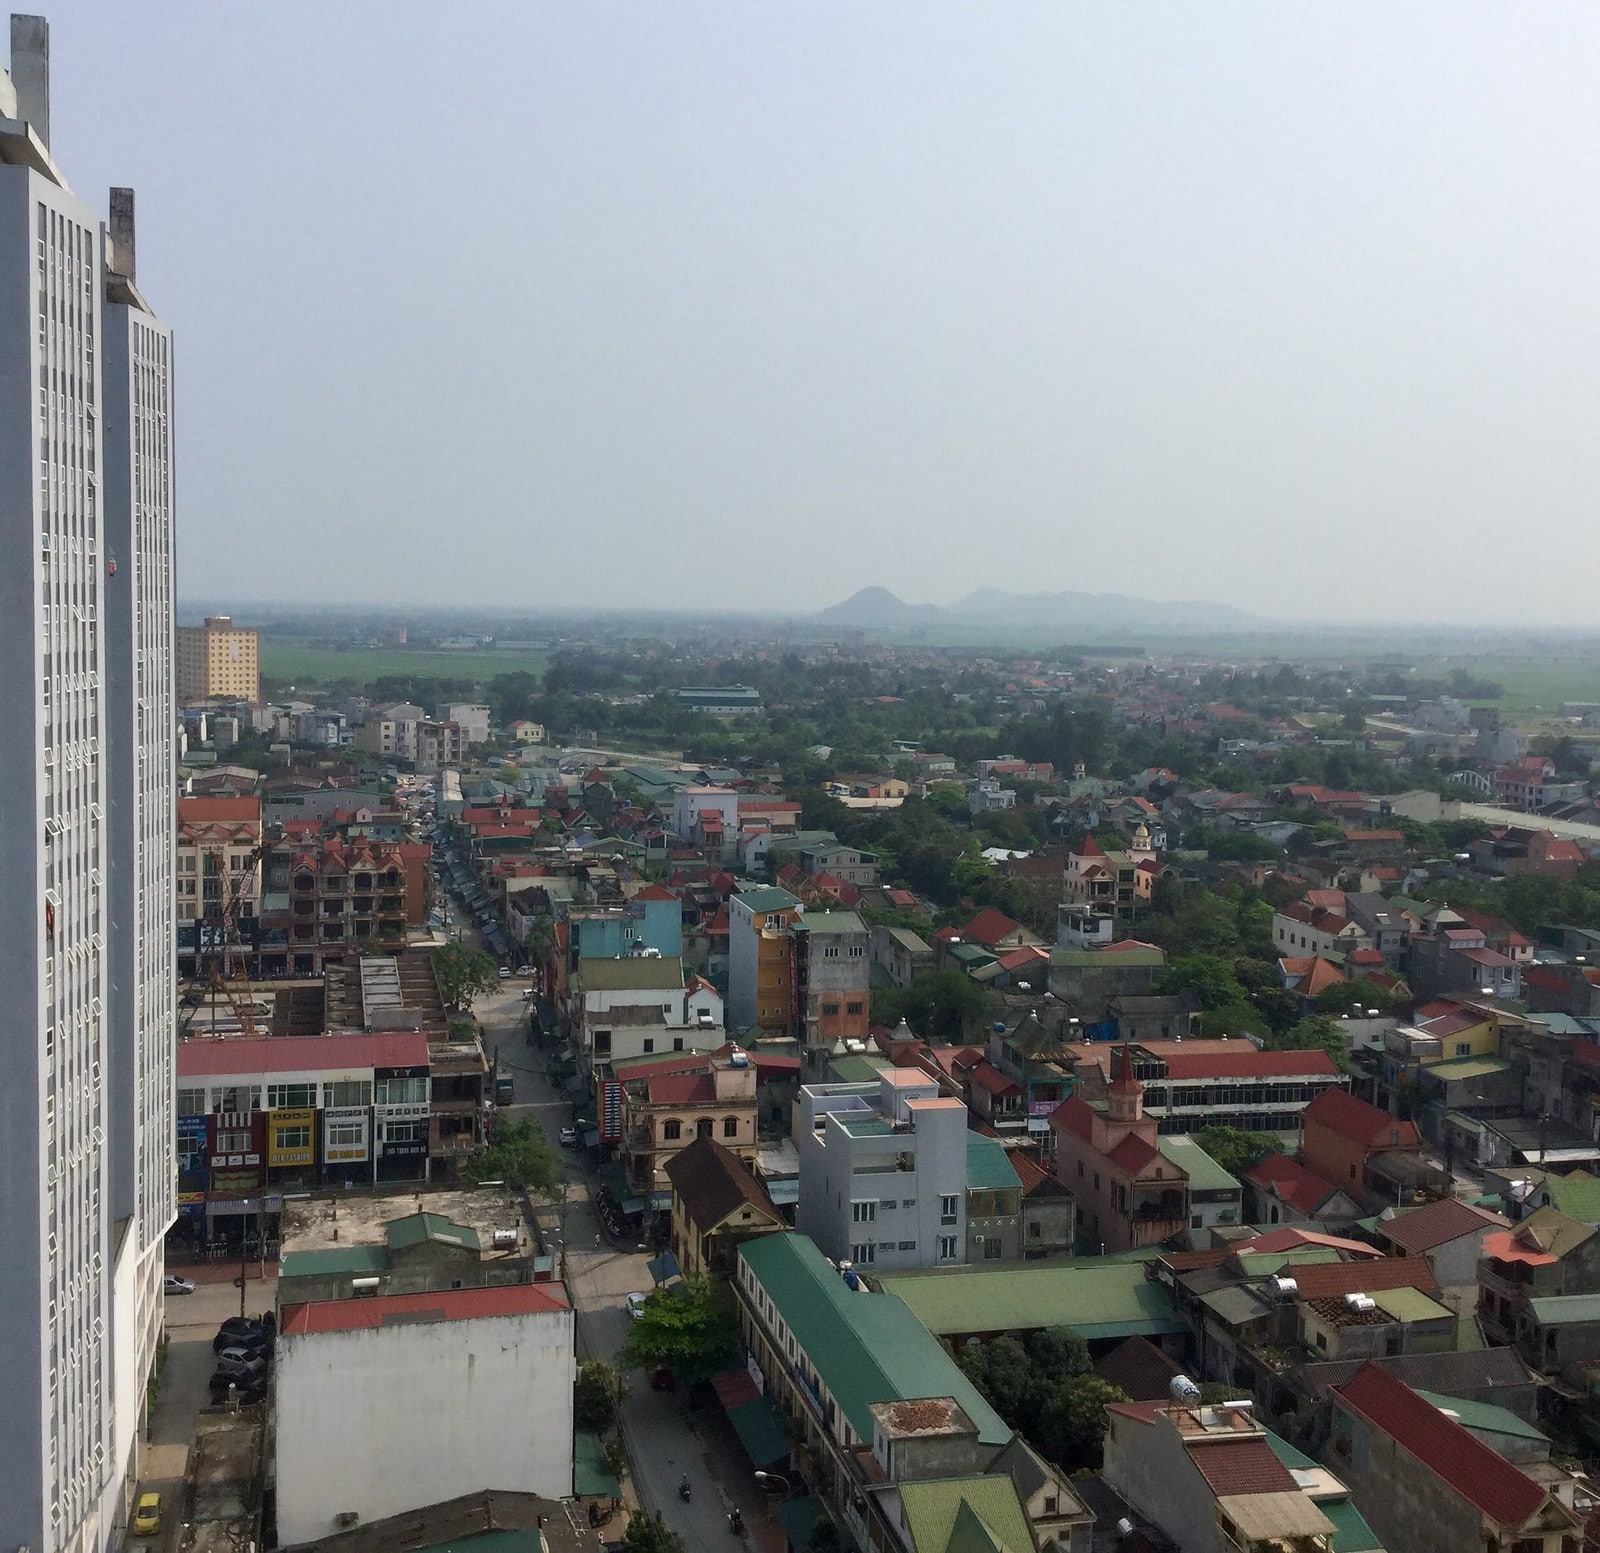 Vinh City, Nghe An Province, North Central Vietnam